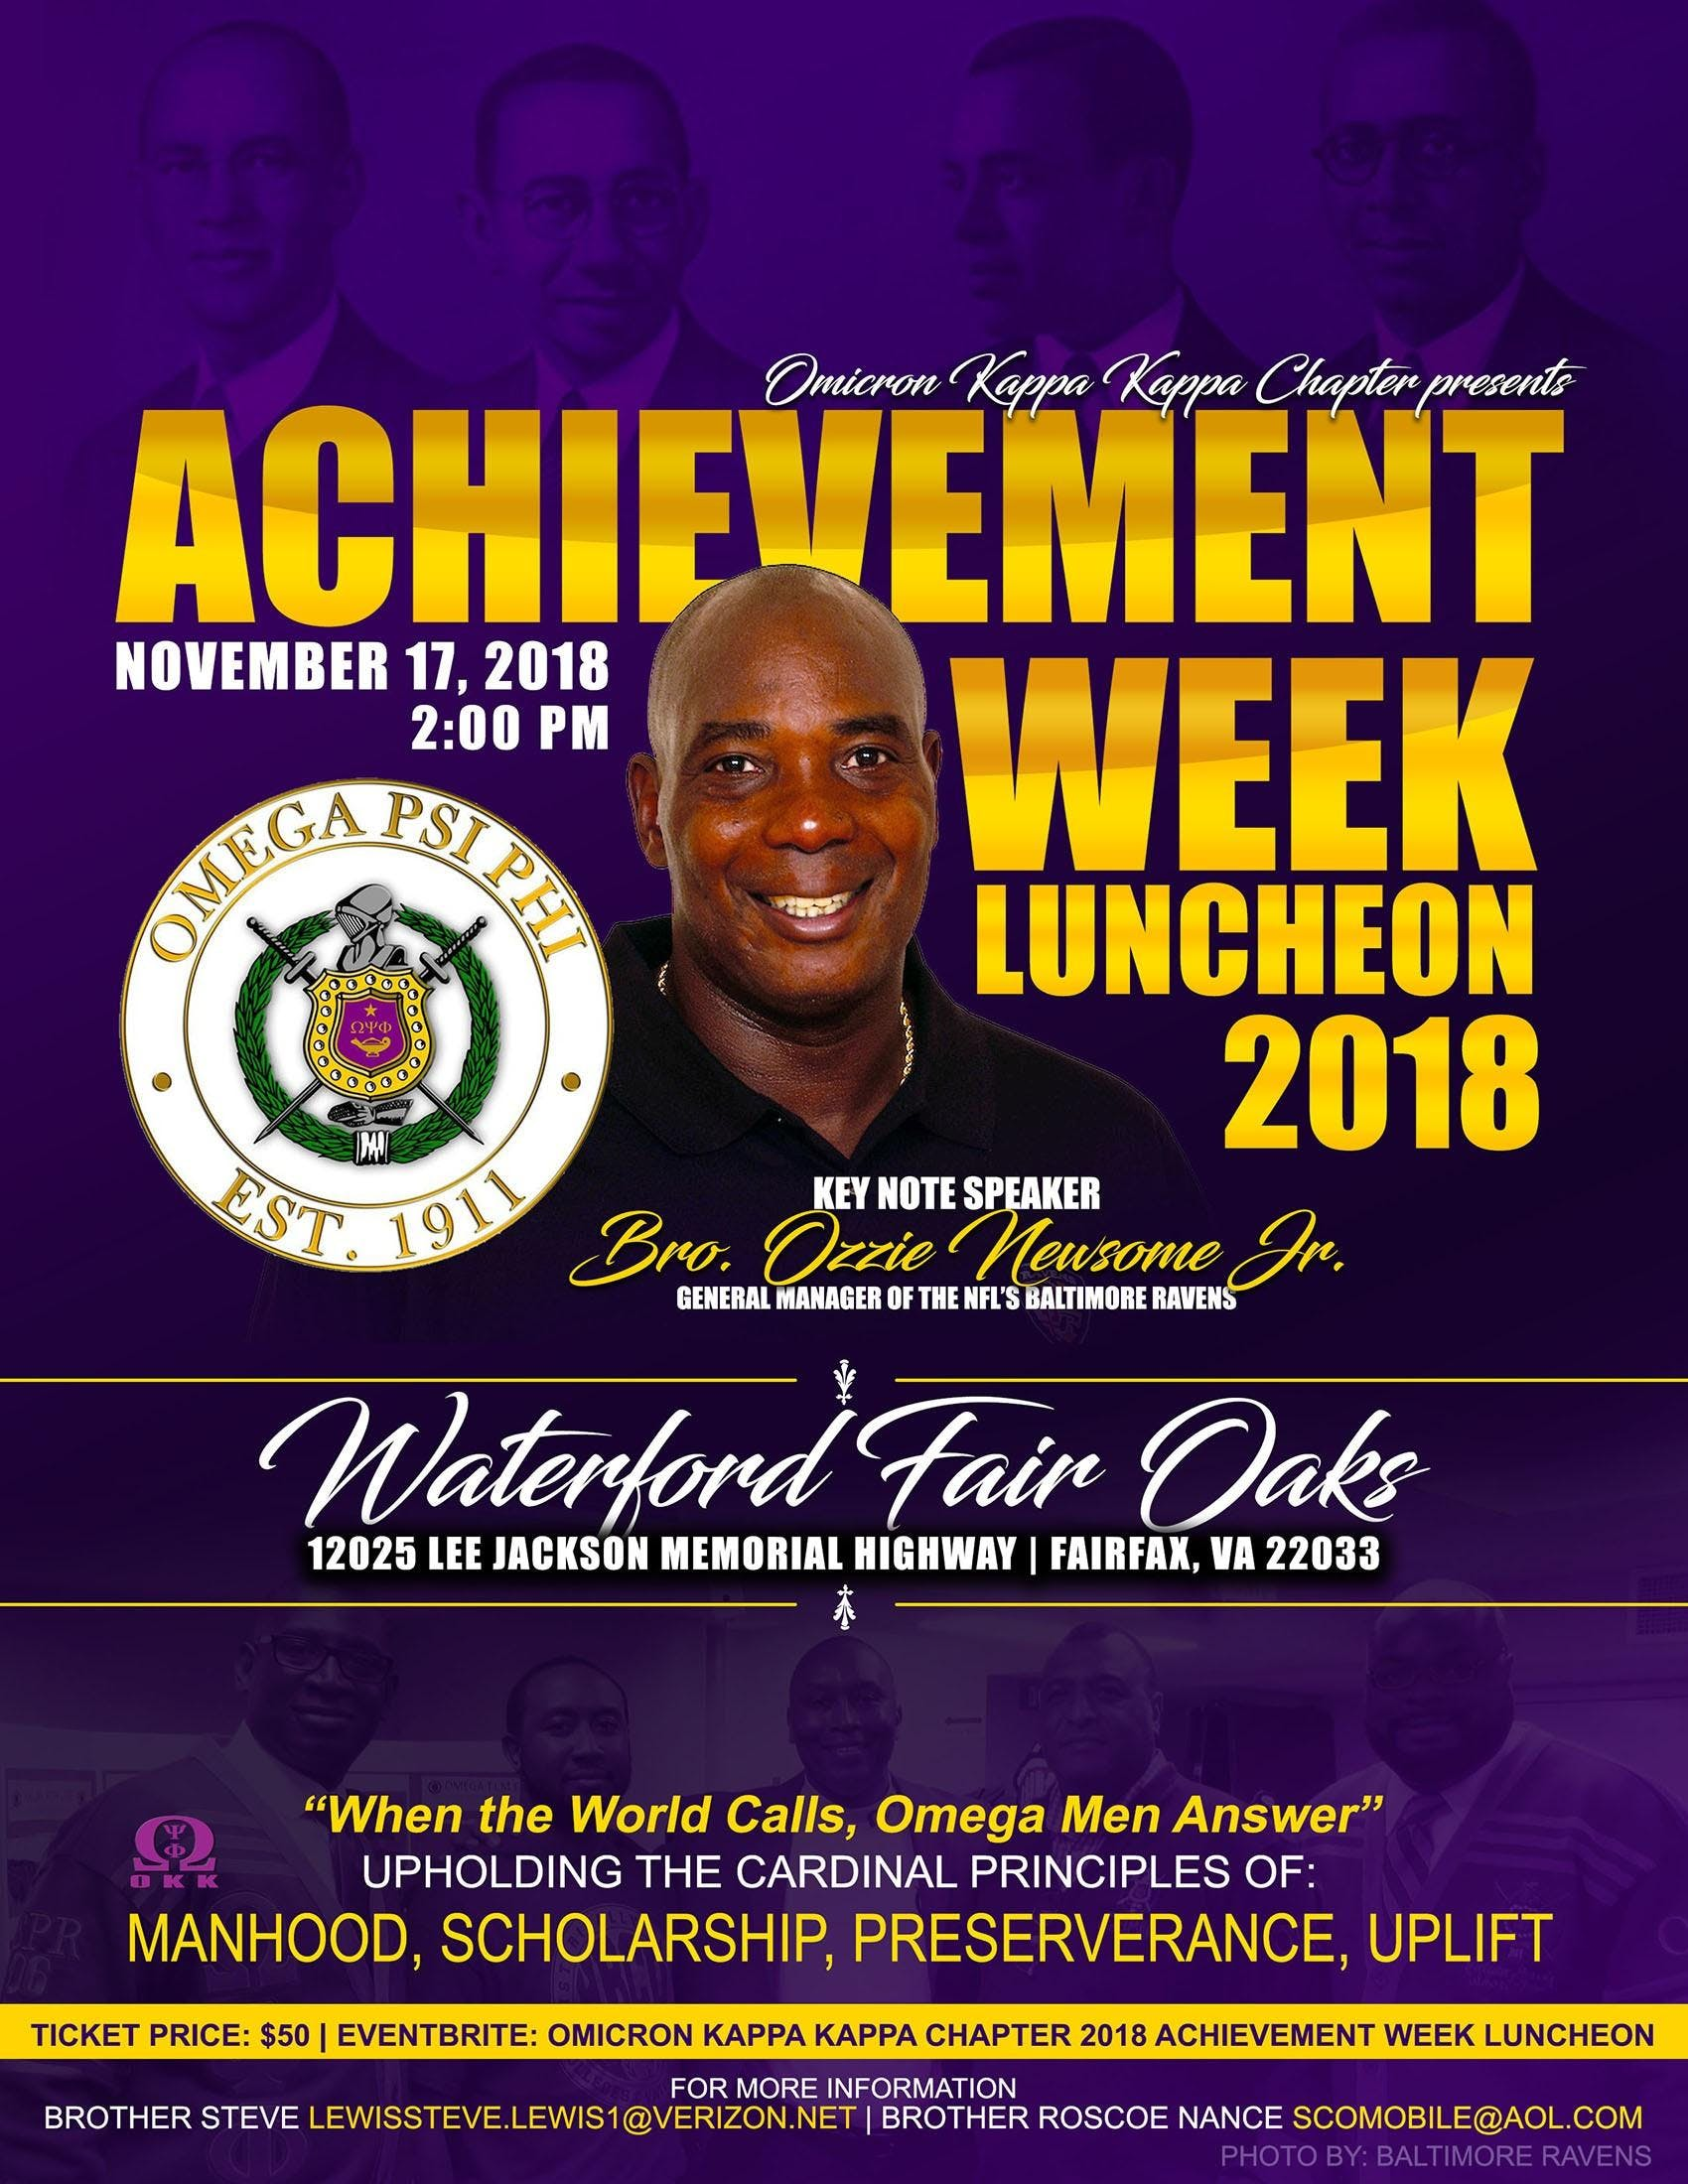 omicron kappa kappa chapter 2018 achievement week luncheon 17 nov 2018